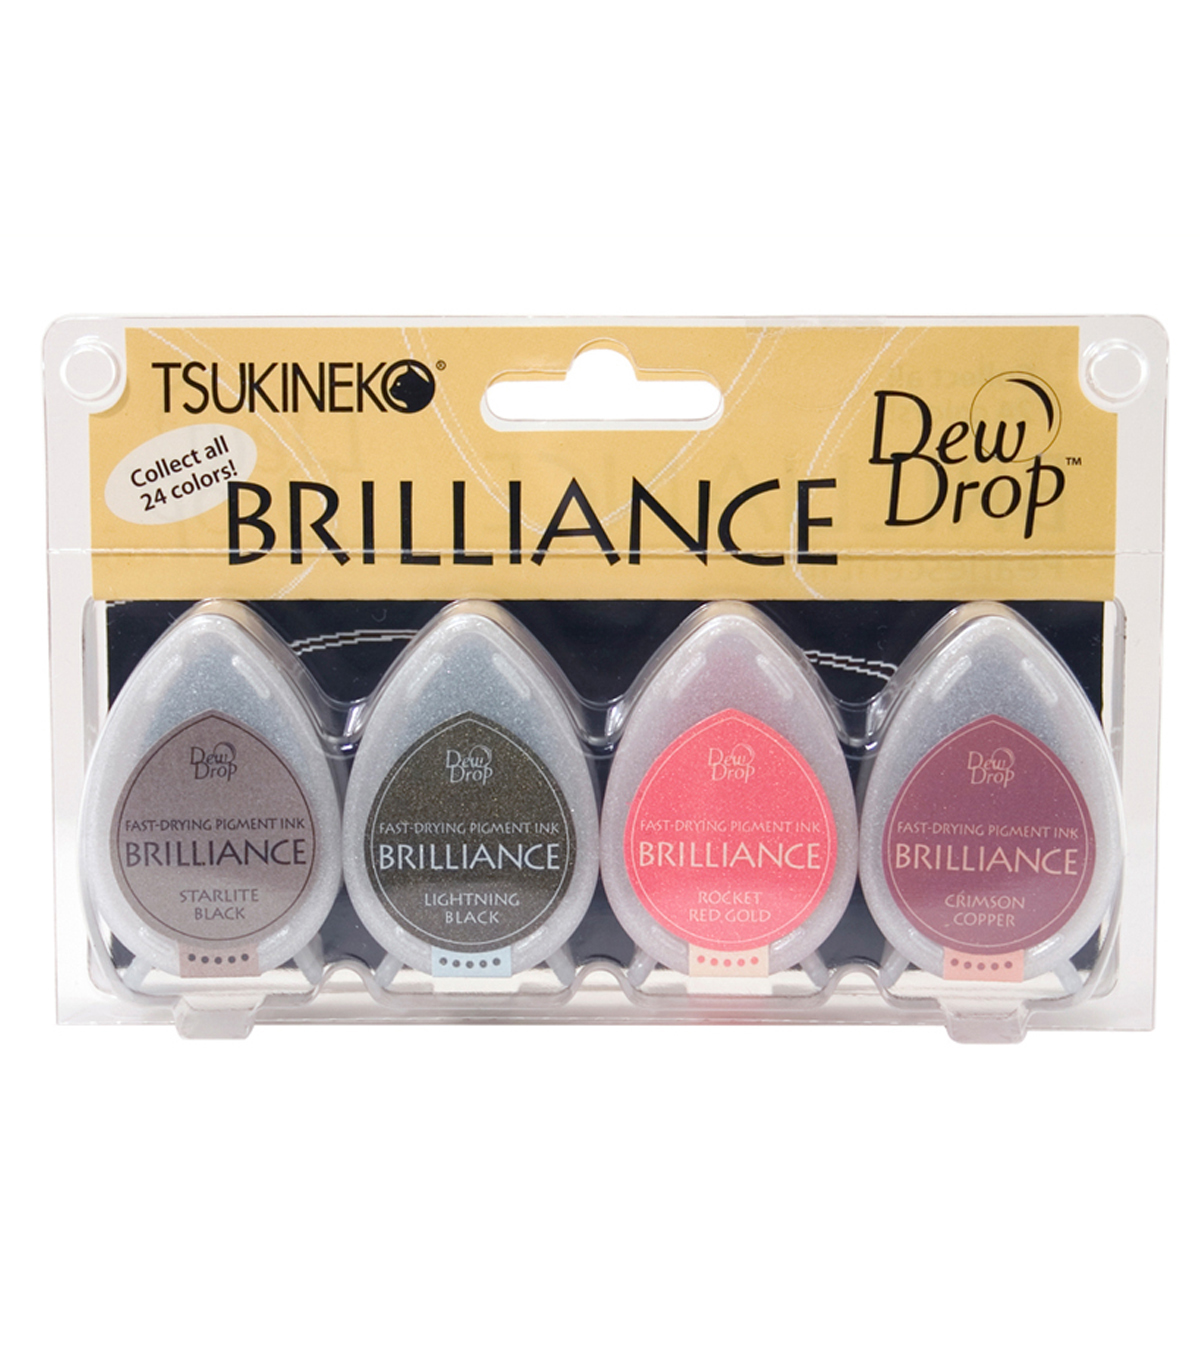 Tsukineko® Brilliance Dew Drop Pigment 4 Pack Inkpad-Two Tone